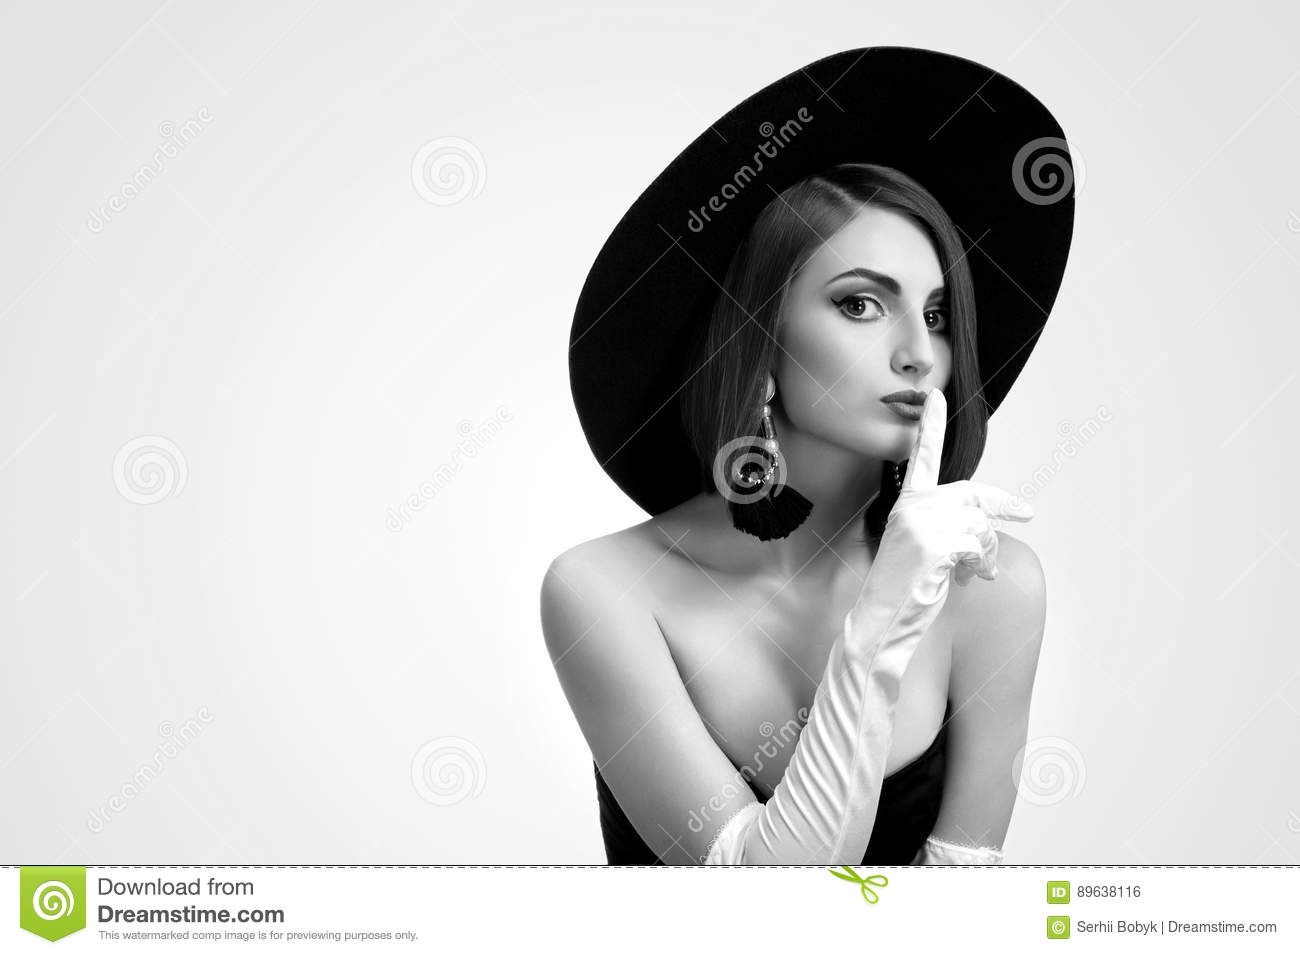 Black and white portrait of a beautiful elegant young fashion model shushing to the camera wearing a hat and gloves posing in a black dress copyspace